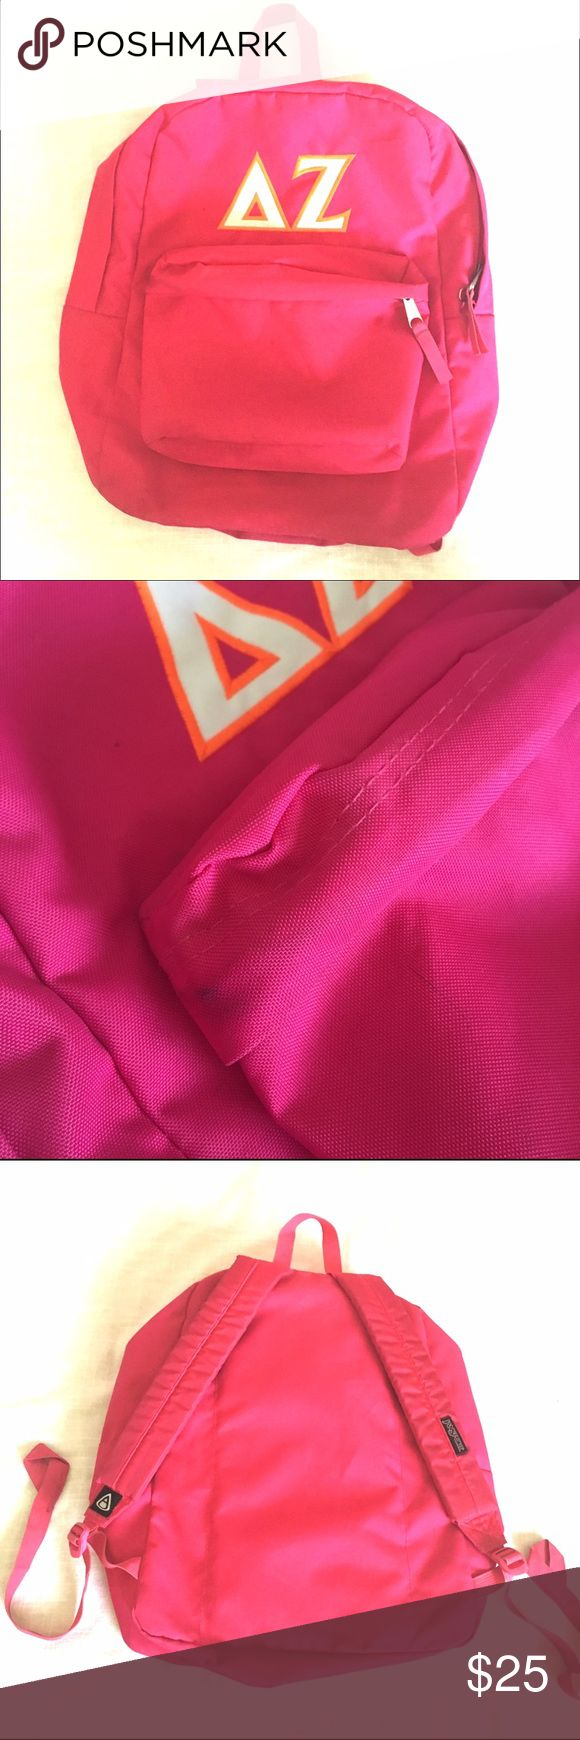 Delta Zeta Backpack Hot pink Jansport backpack with white Delta Zeta letters embroidered on with orange stitching. In very good condition, except there are some spots (just dirt) that are hardly noticeable unless you look very closely. Jansport Bags Backpacks